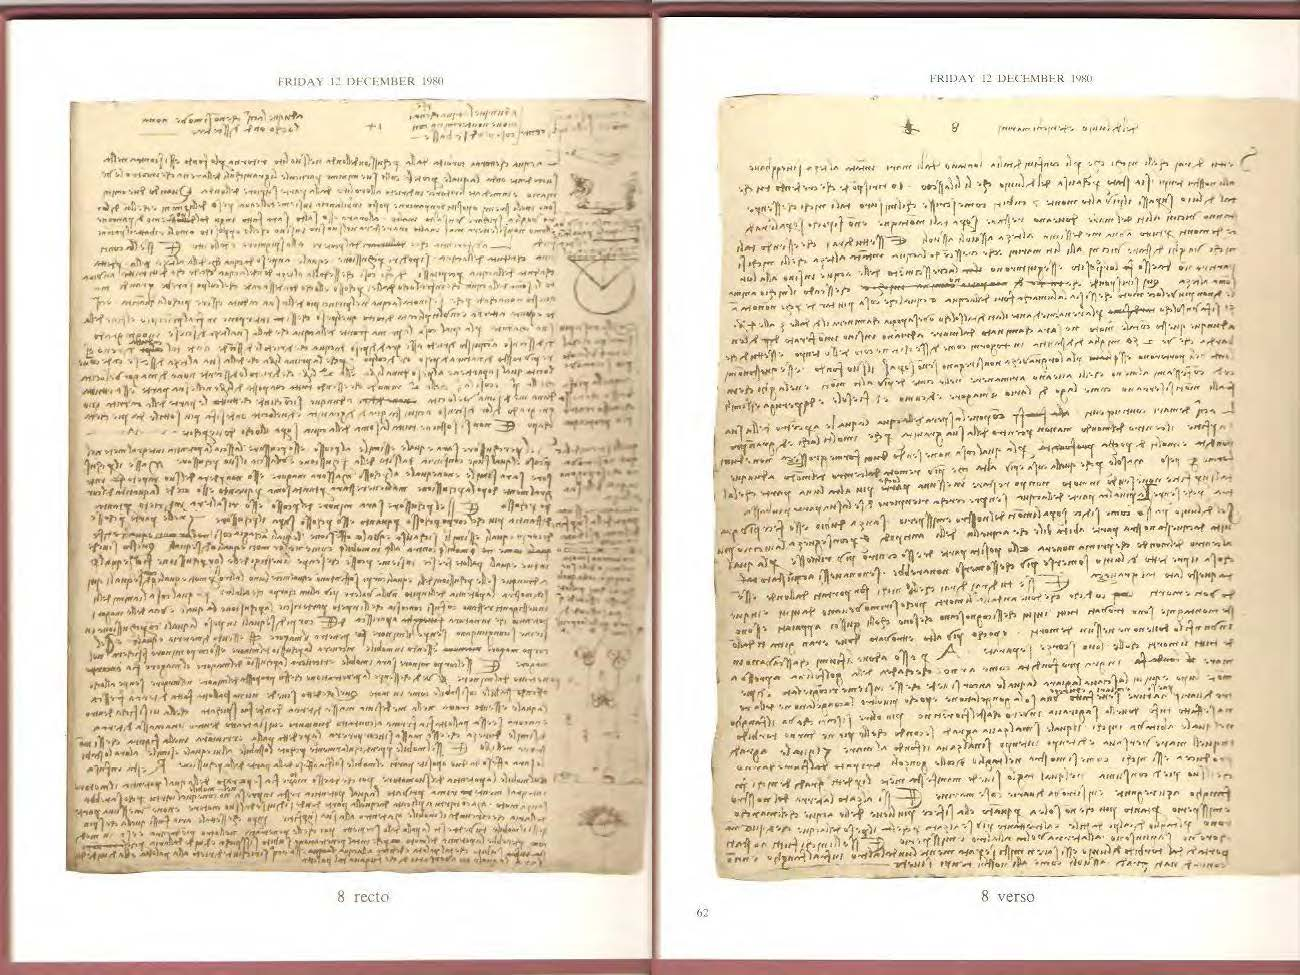 Codex_Leicester_Page_09_Image_0001.jpg